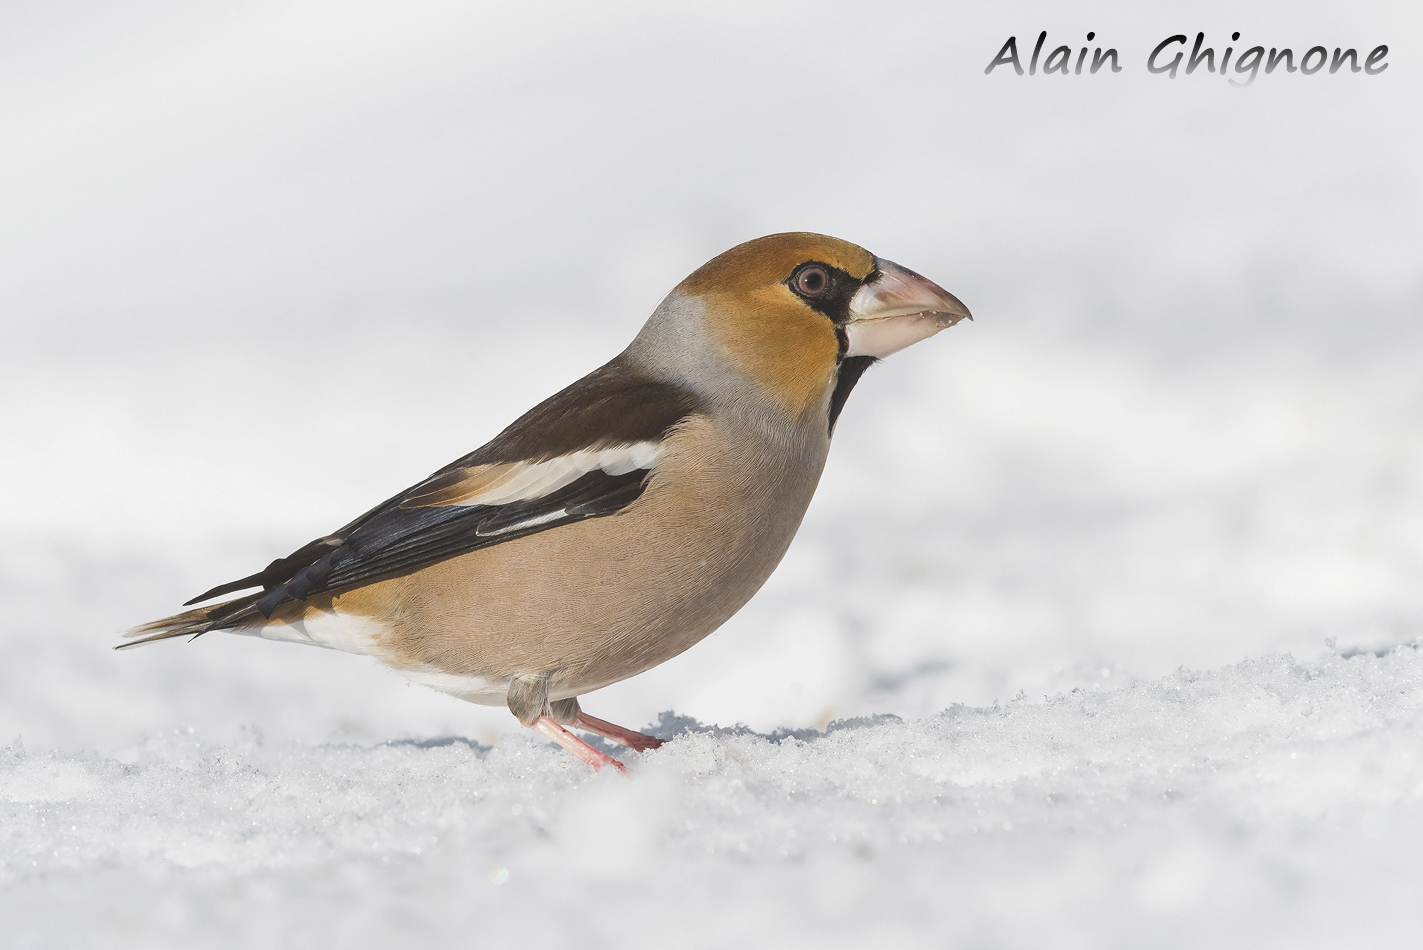 frosone nella neve Coccothraustes coccothraustes hawfinch